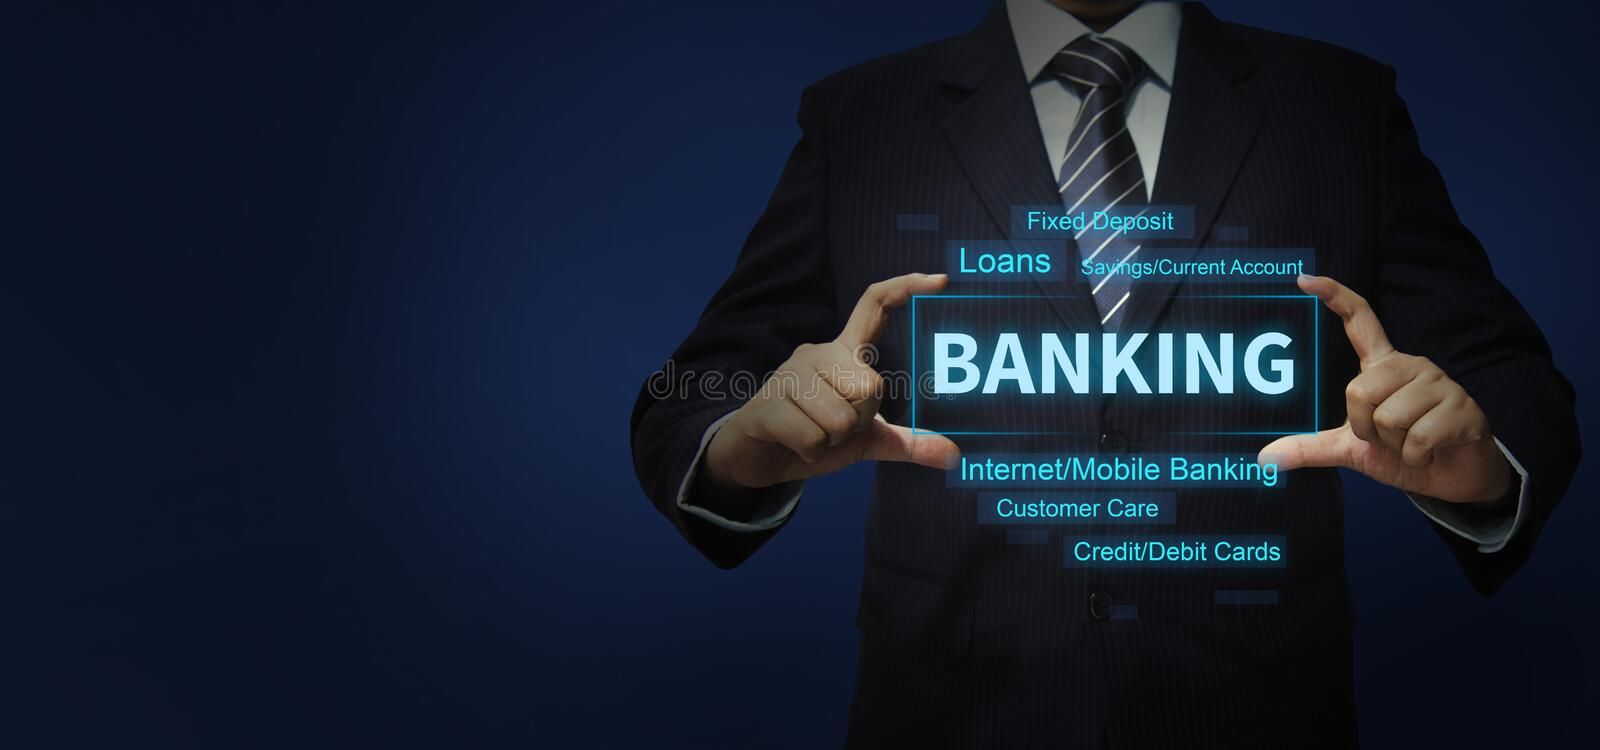 Banking Digital Concept With Business Person Stock Photo - Image of bank,  candidate: 181270090